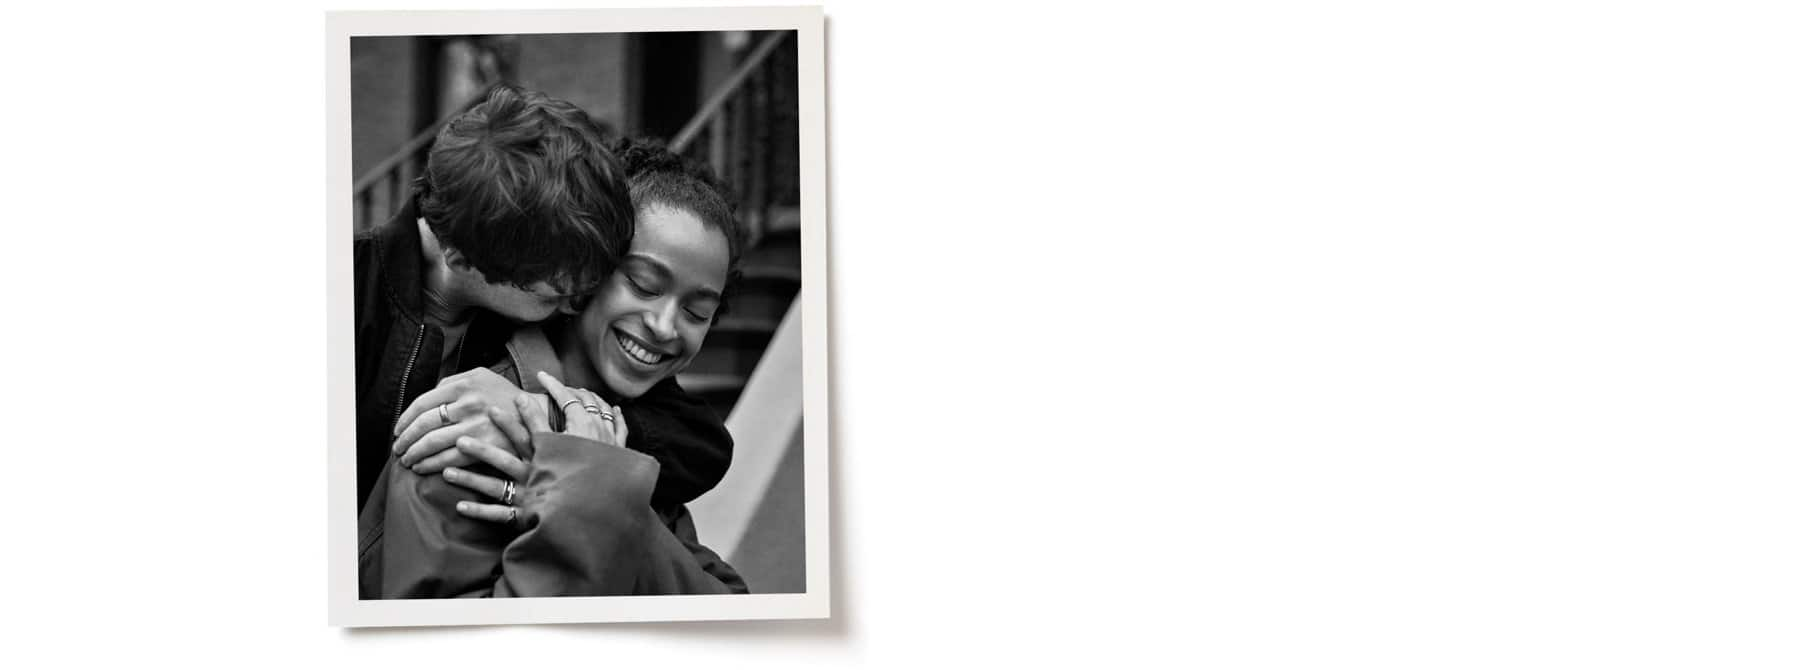 A black-and-white photo atop a white background depicts Josh behind a smiling Zora, with his head nuzzled in her shoulder. Both are wearing David Yurman jewelry.